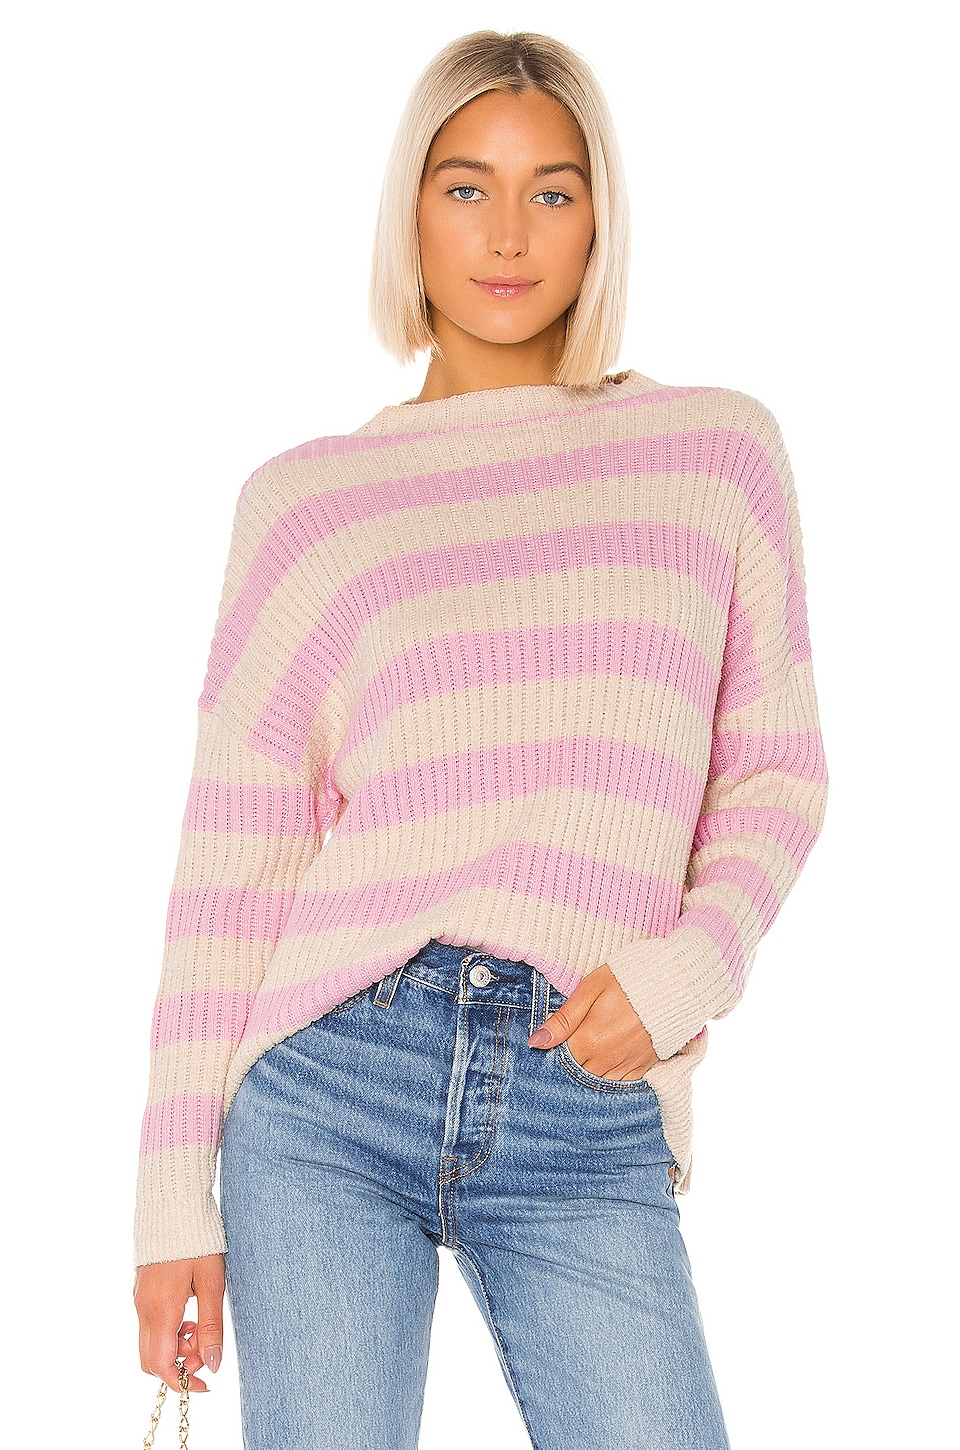 Lovers + Friends Candice Sweater in Tan & Pink Stripe